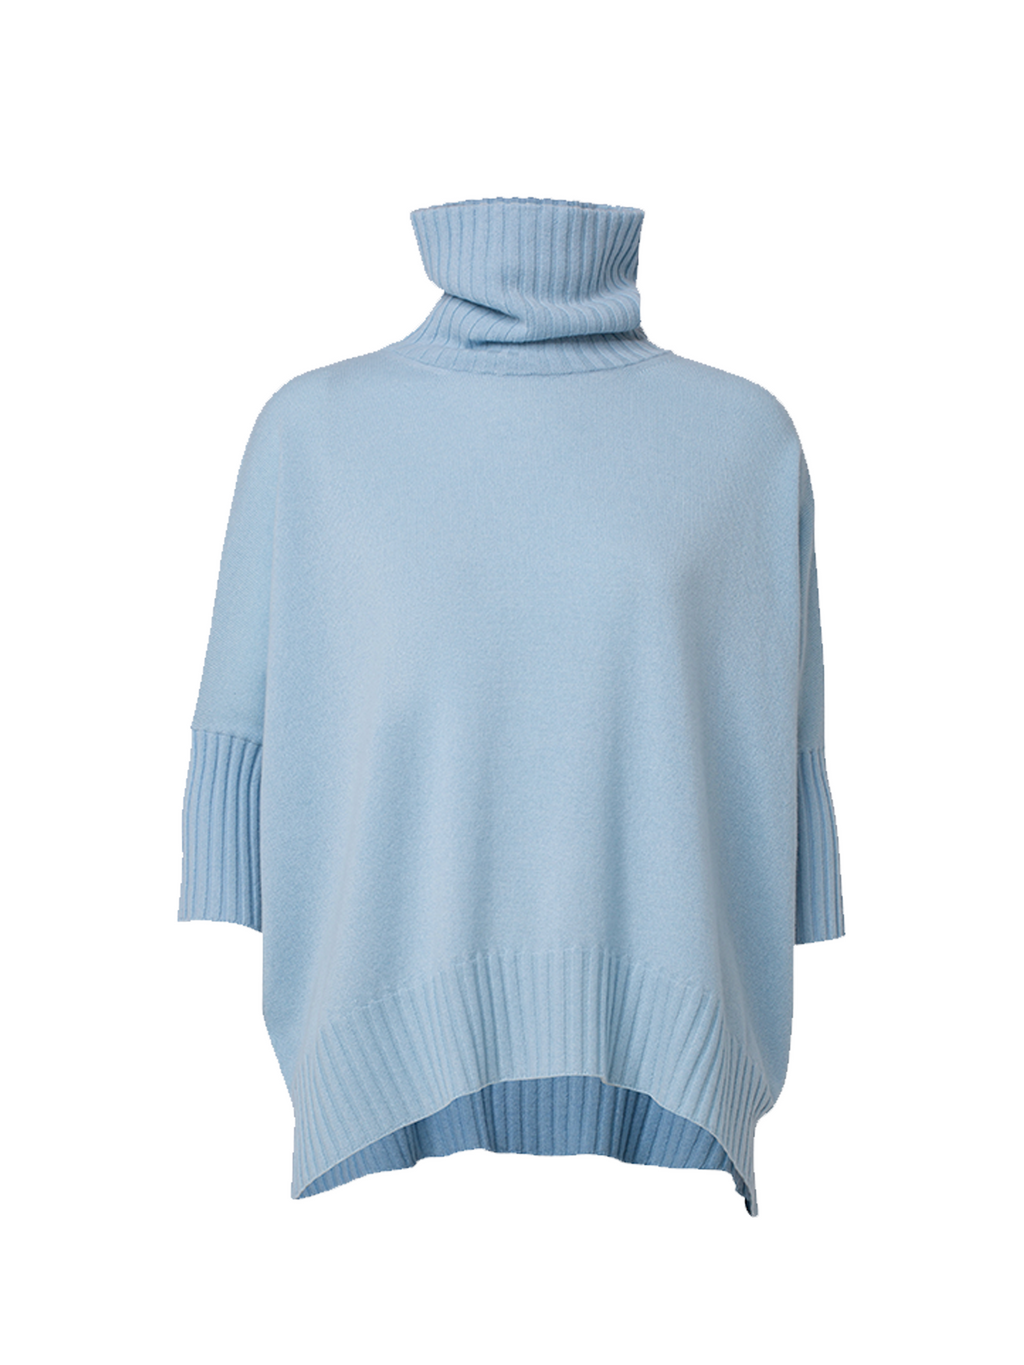 Dorothee Schumacher Soft Edge Turtleneck Short Sleeve Sweater